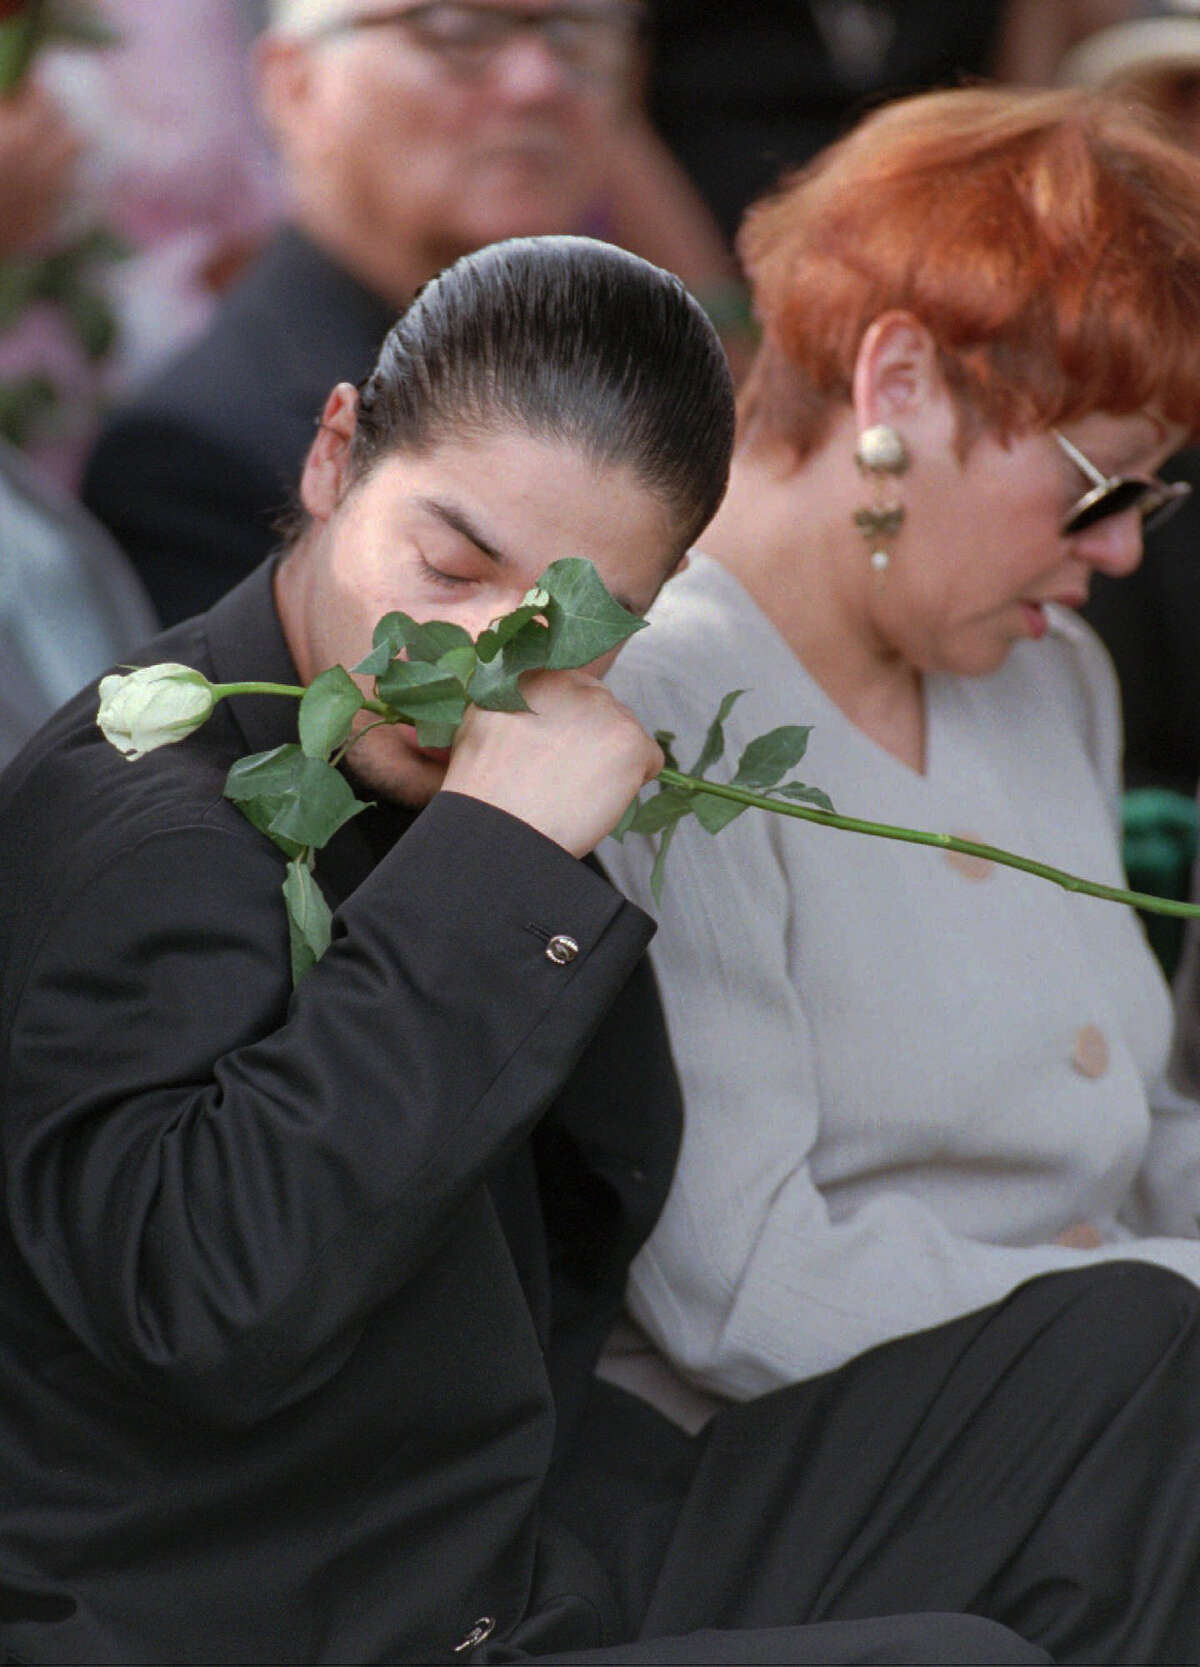 Chris Perez, the husband of slain Tejano star Selena, wipes a tear away from his eye during her funeral in Corpus Christi April 3, 1995. Next to him his Selena's mother, Marcella Quintanilla. Photo by David J. Phillip/pool